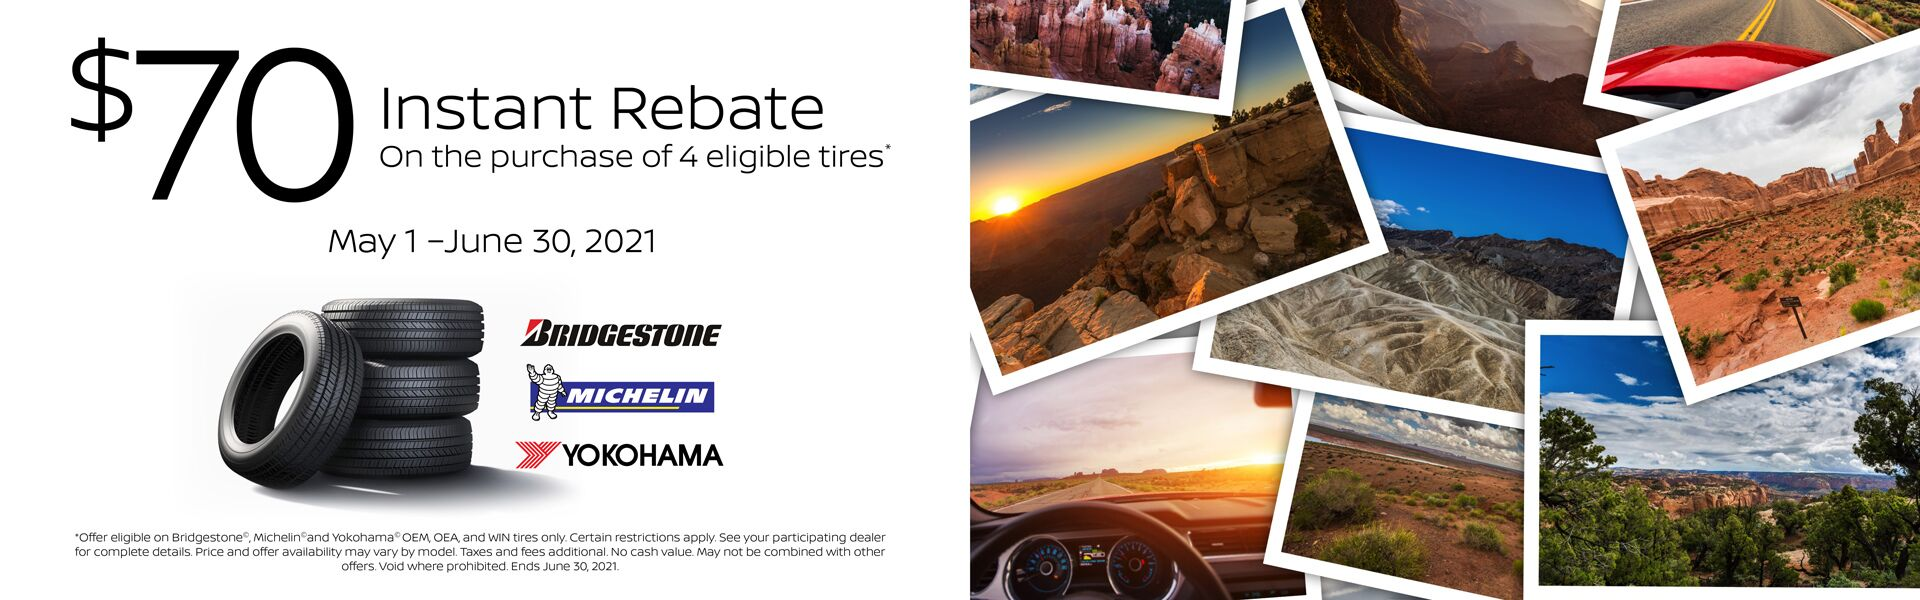 $70 Instant Rebate on purchase of 4 eligible tires